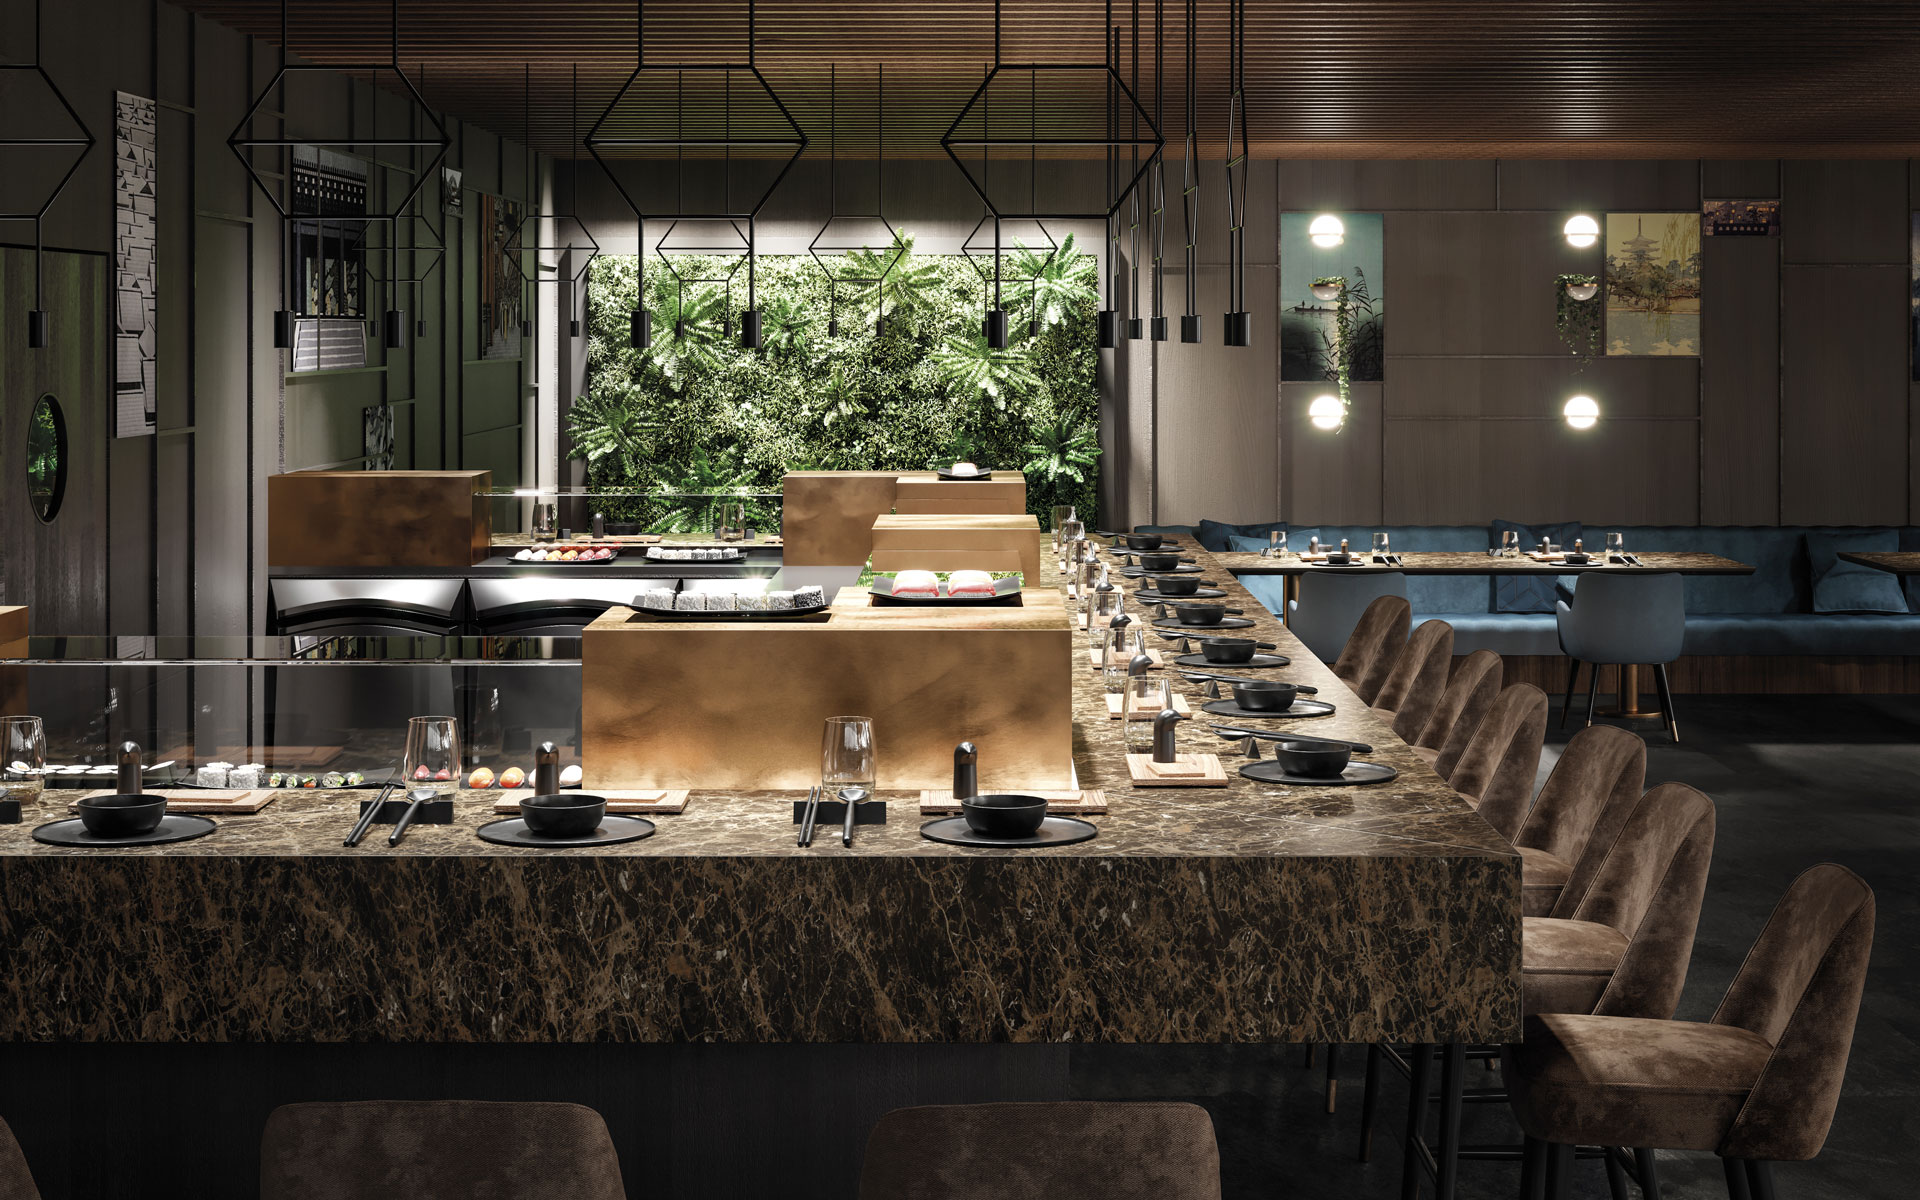 large-italian-porcelain-restaurant-counter-marble-effect-tiles